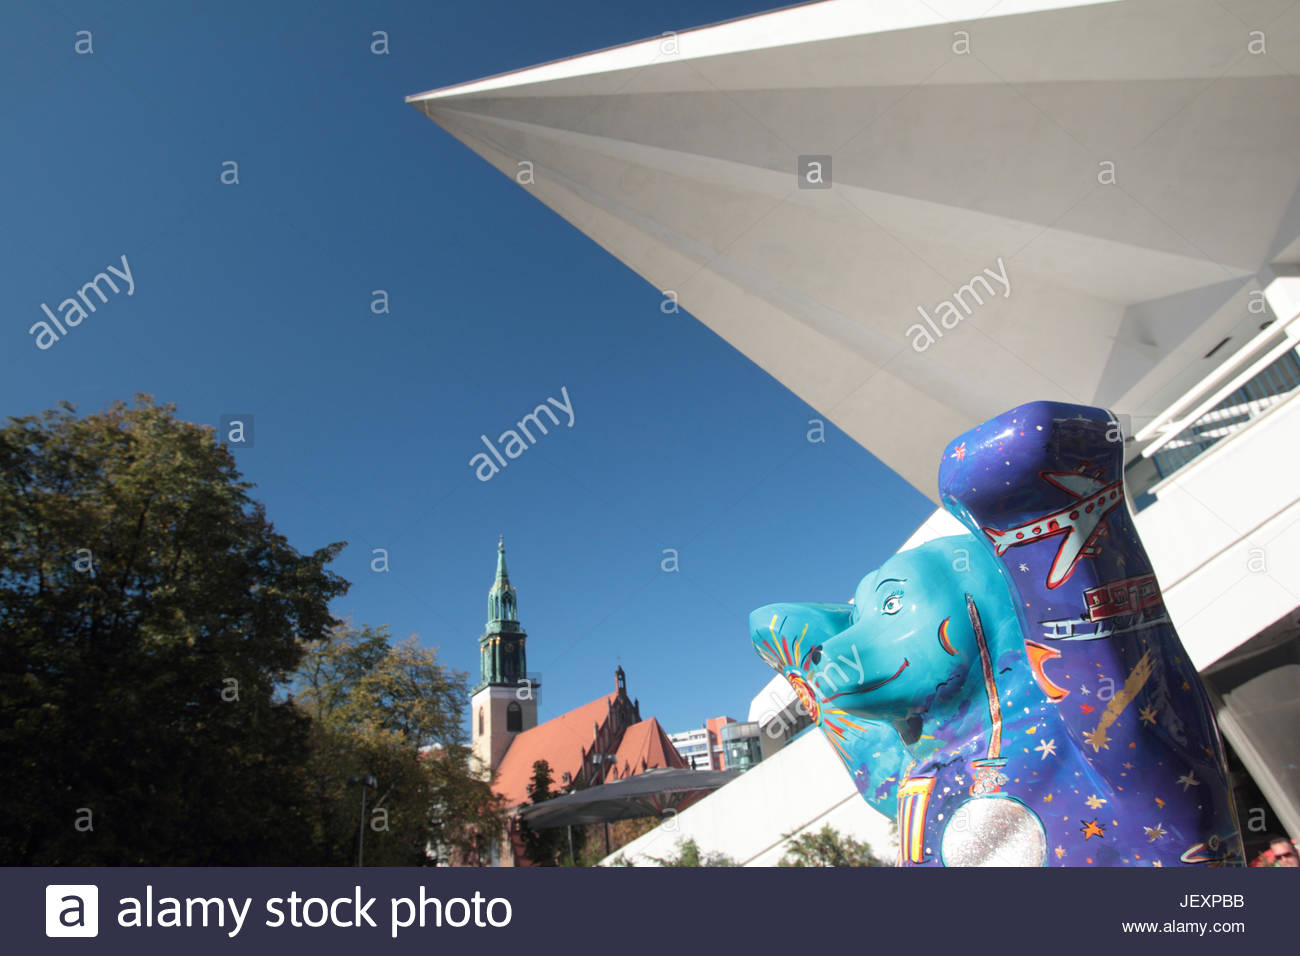 The story of the Buddy Bears started with an artistic event in Berlin in 2001. Inspired by the cow parade in Zurich Stock Photo